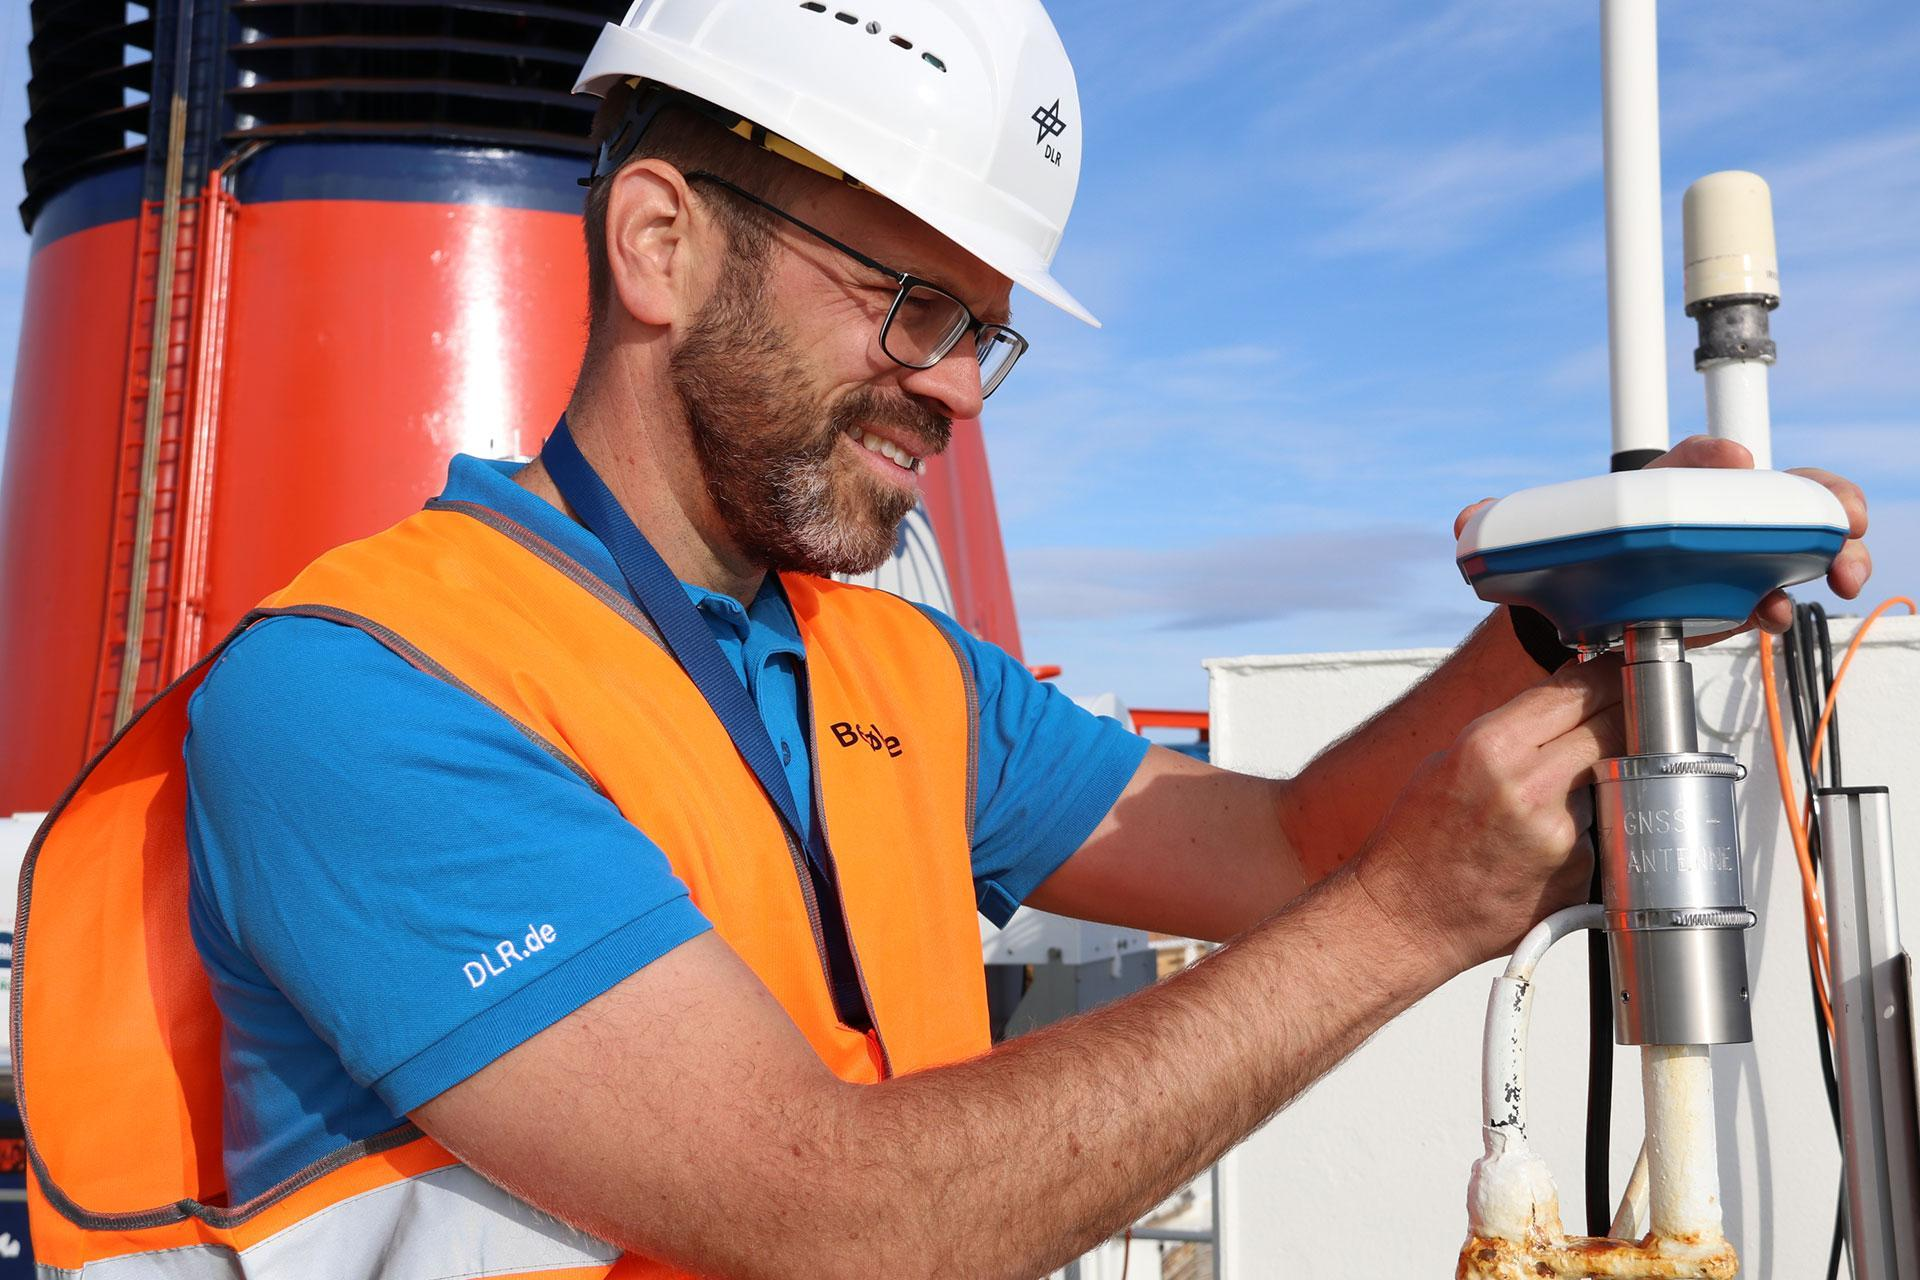 DLR project leader Simon Plass attaches a receiving antenna to Polarstern's upper deck